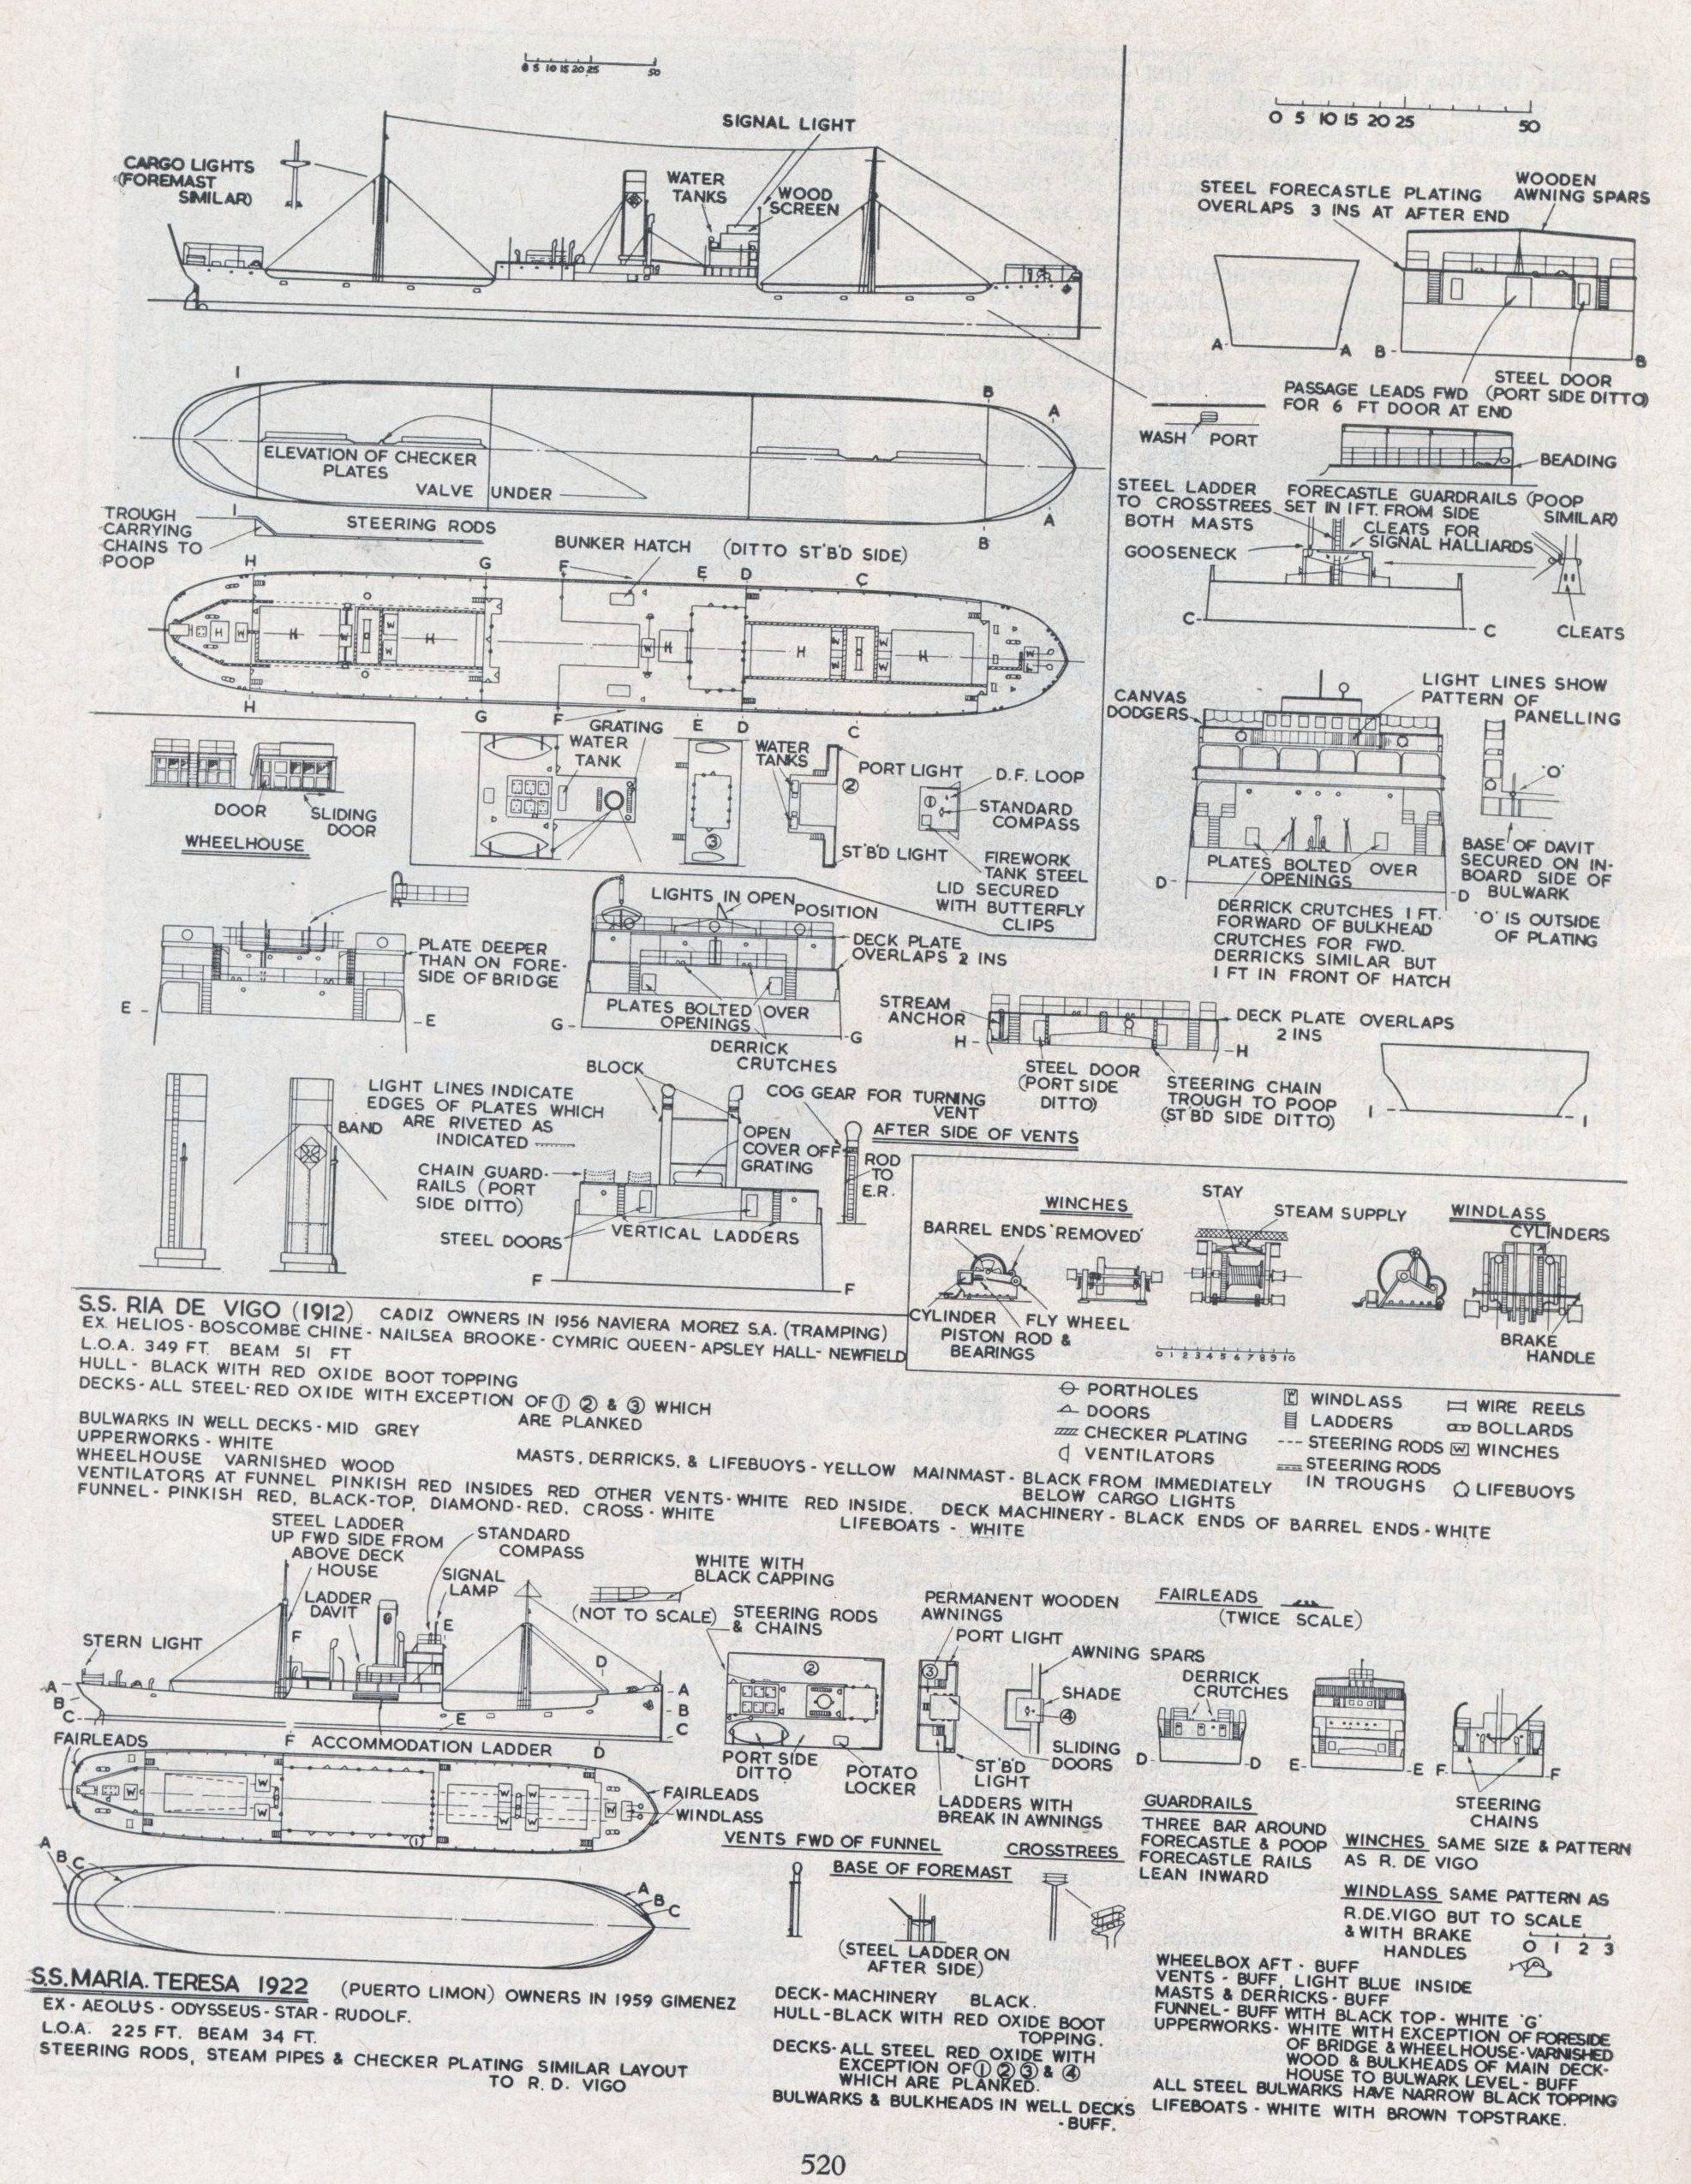 Pin By Charlie Kucera On Ship Line Drawings Plywood Boat Plans Model Boat Plans Boat Plans